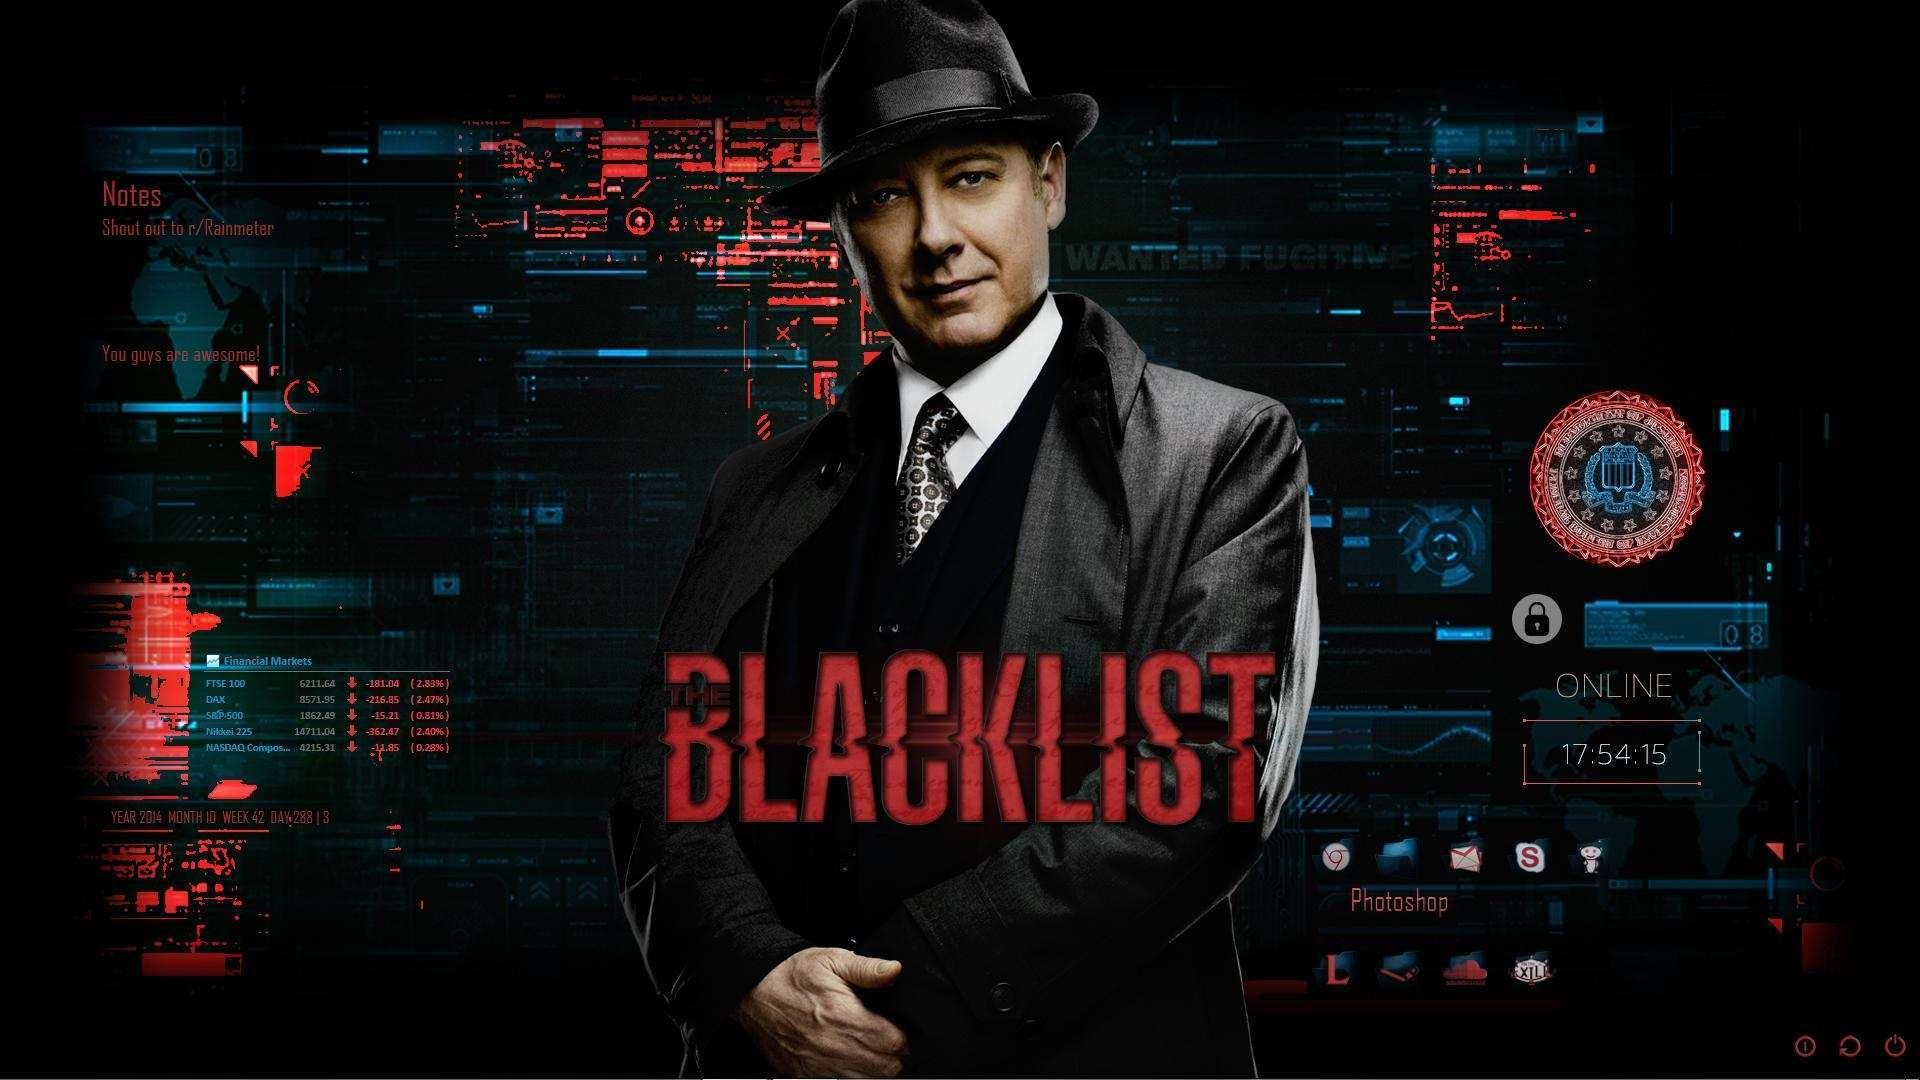 The Blacklist wallpapers HD free Download